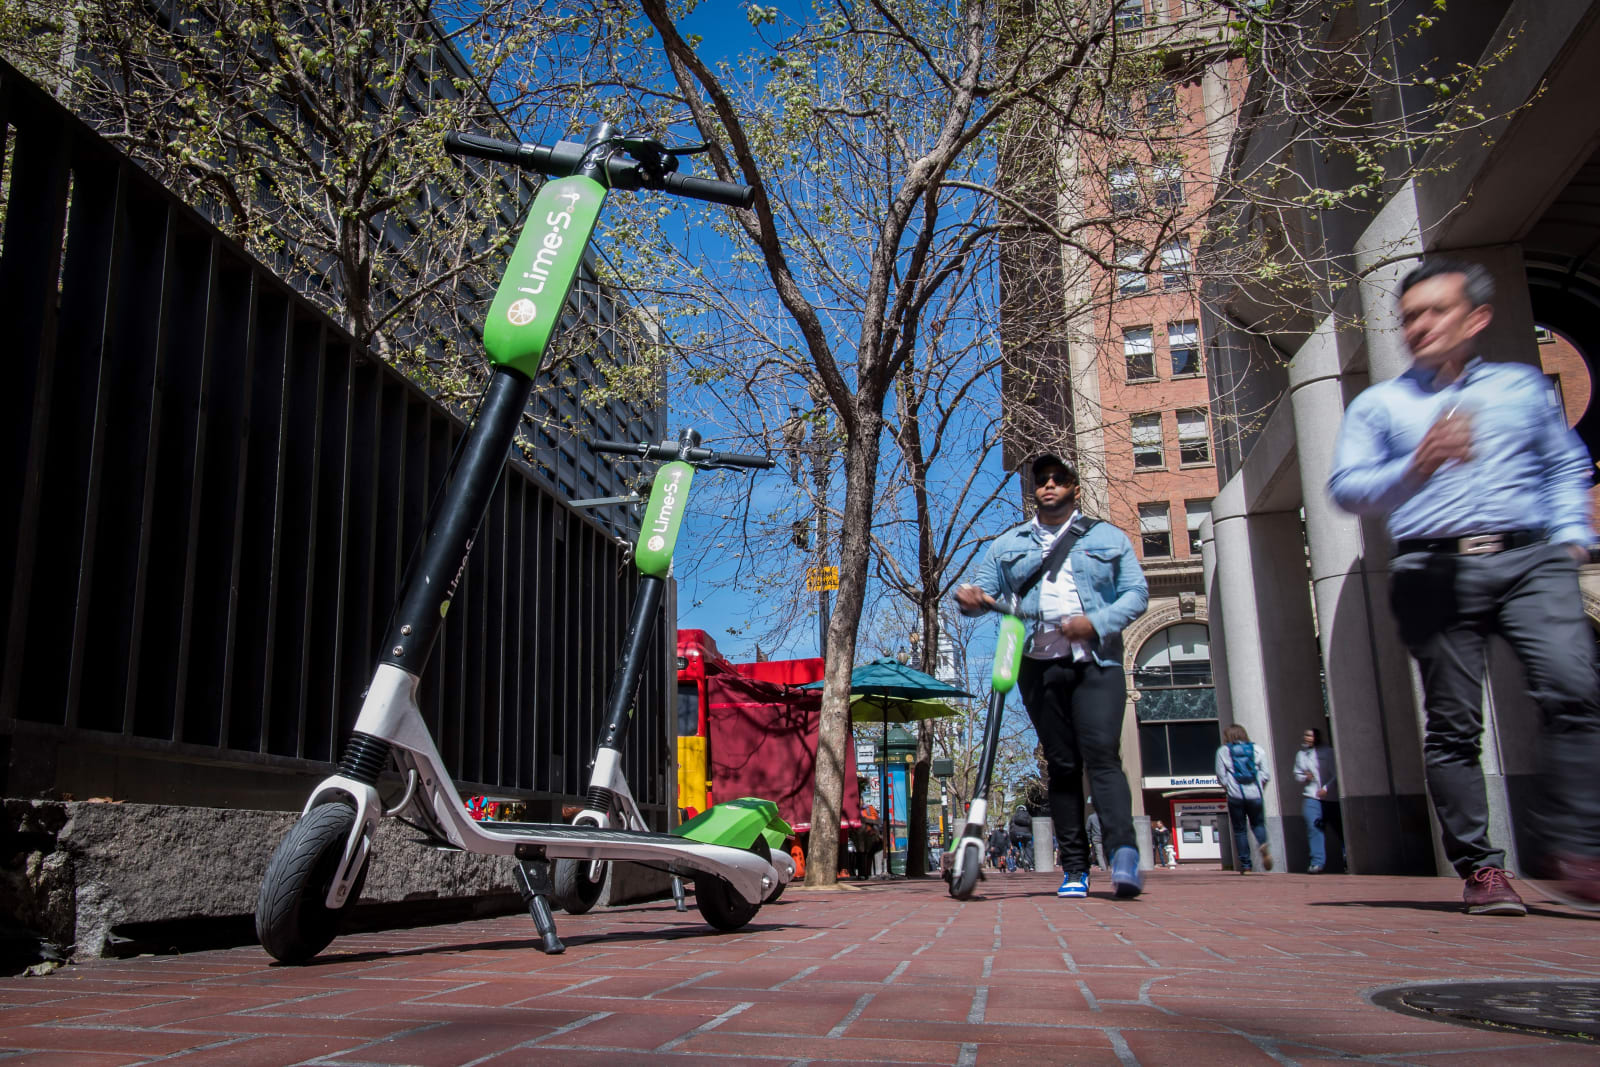 Silicon Valley's scooter scourge is coming to an end